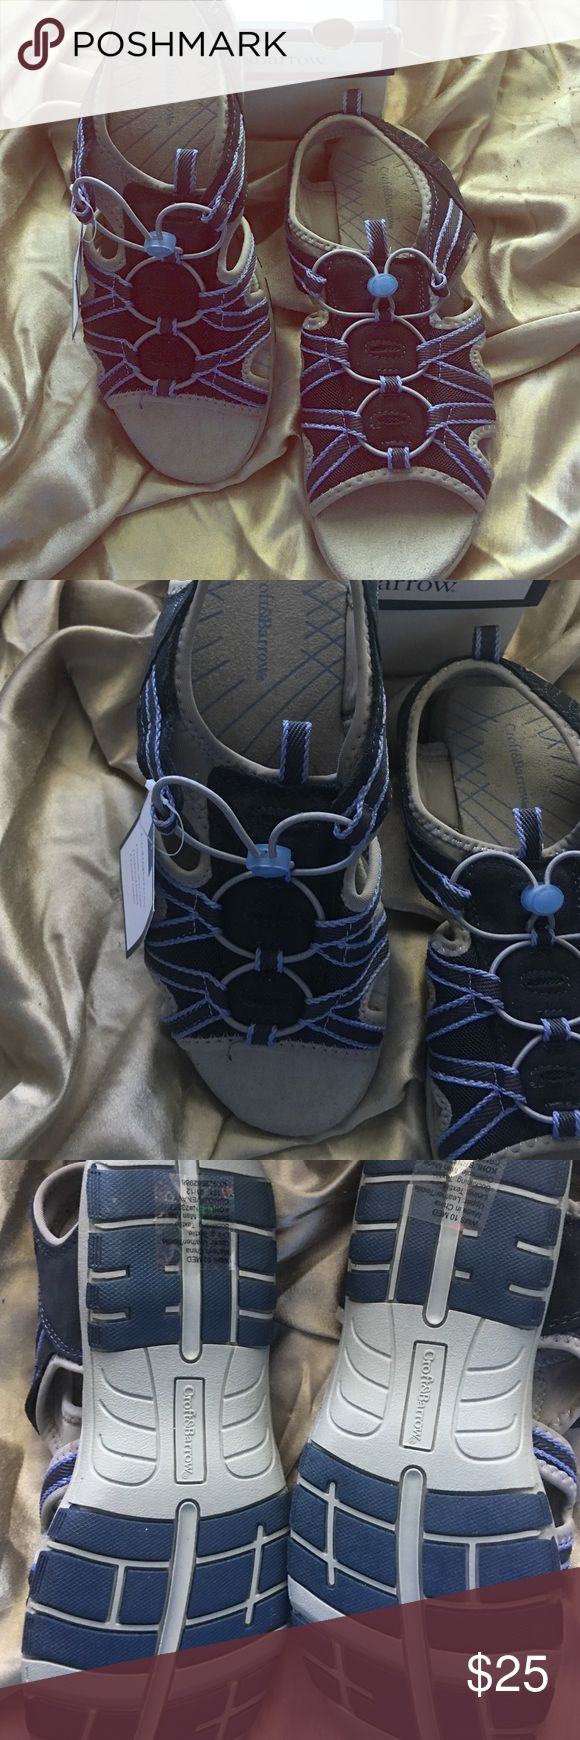 Ladies sandals Croft&barrow ladies suede upper sandal never worn new in box size 10, very sturdy n well made for comfort croft & barrow Shoes Sandals